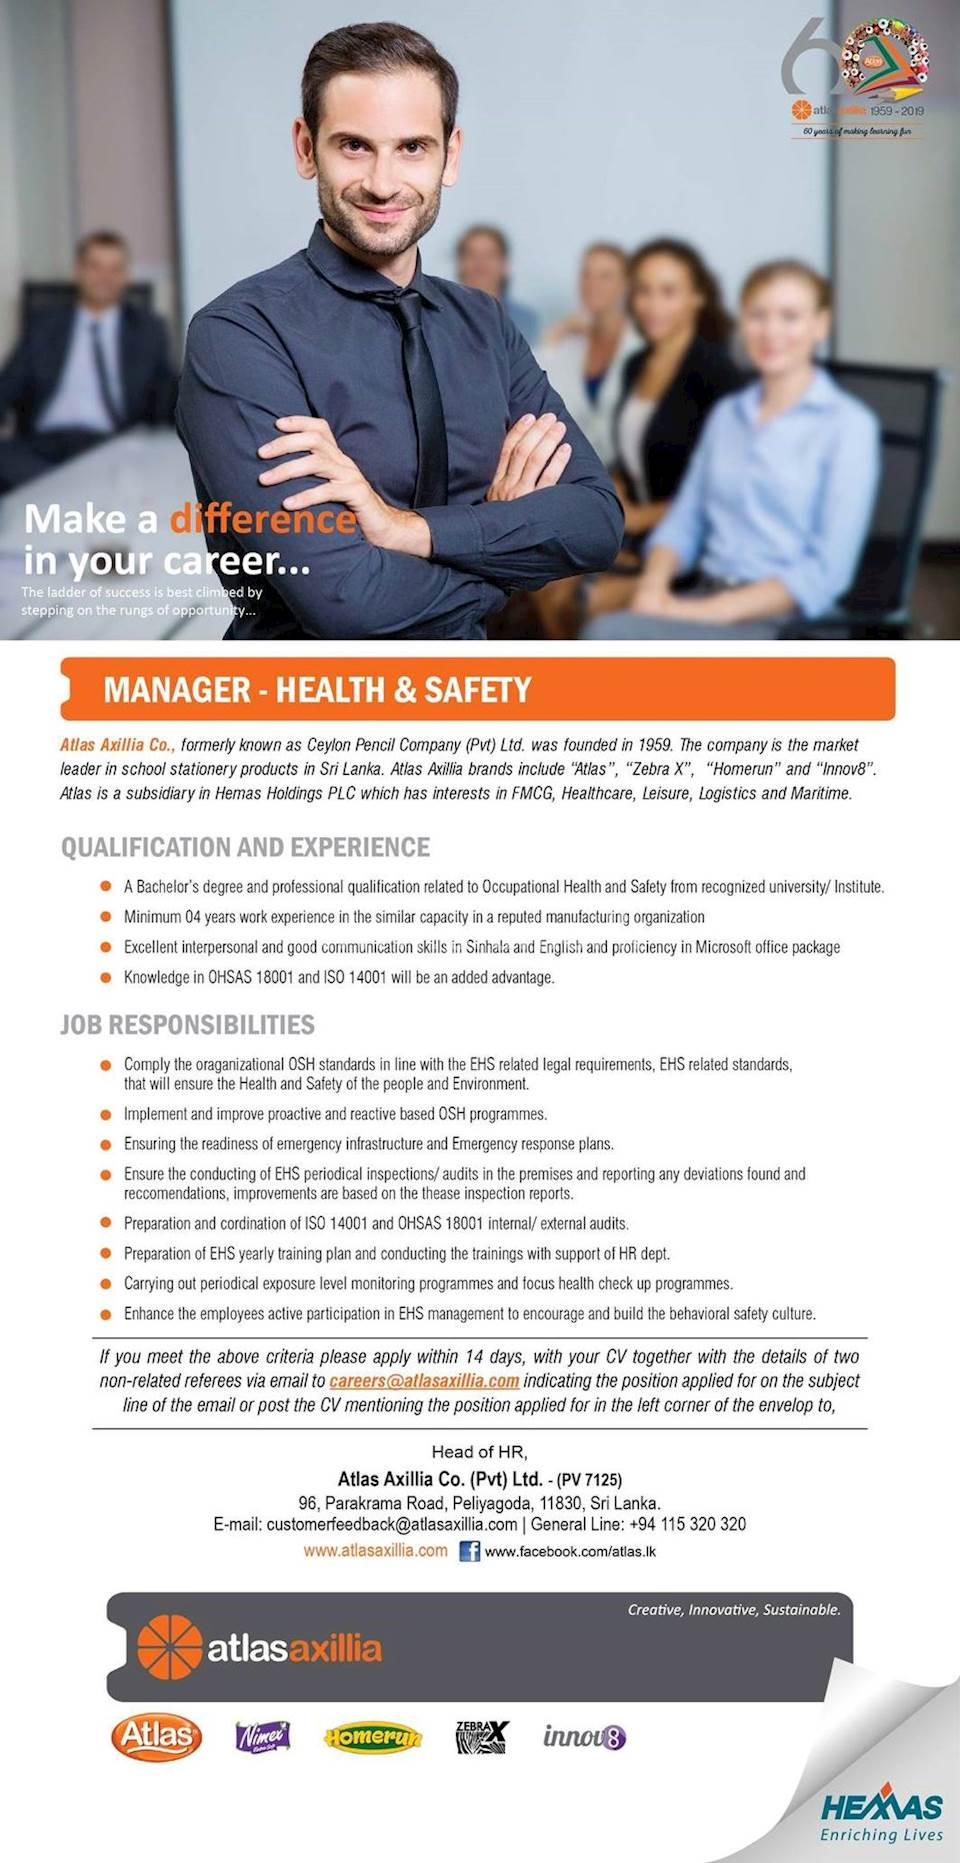 Manager - Health & Safety